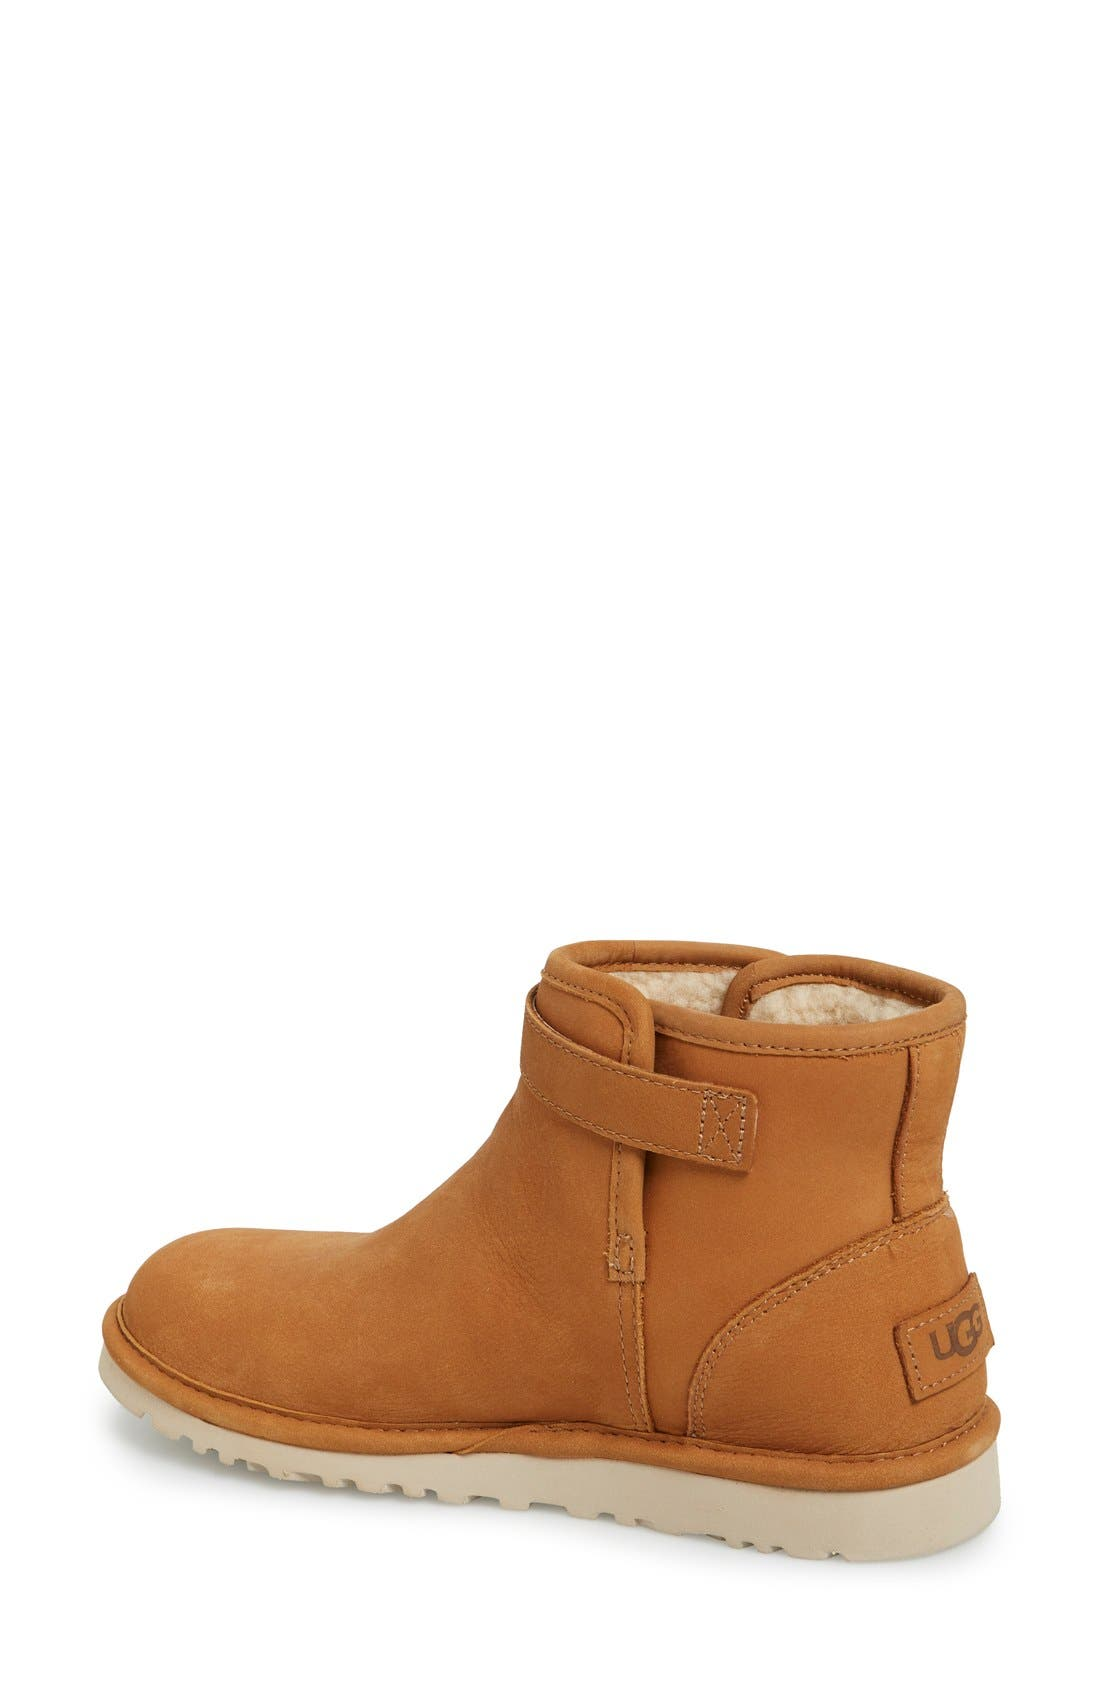 'Rella' Leather Ankle Boot,                             Alternate thumbnail 2, color,                             219